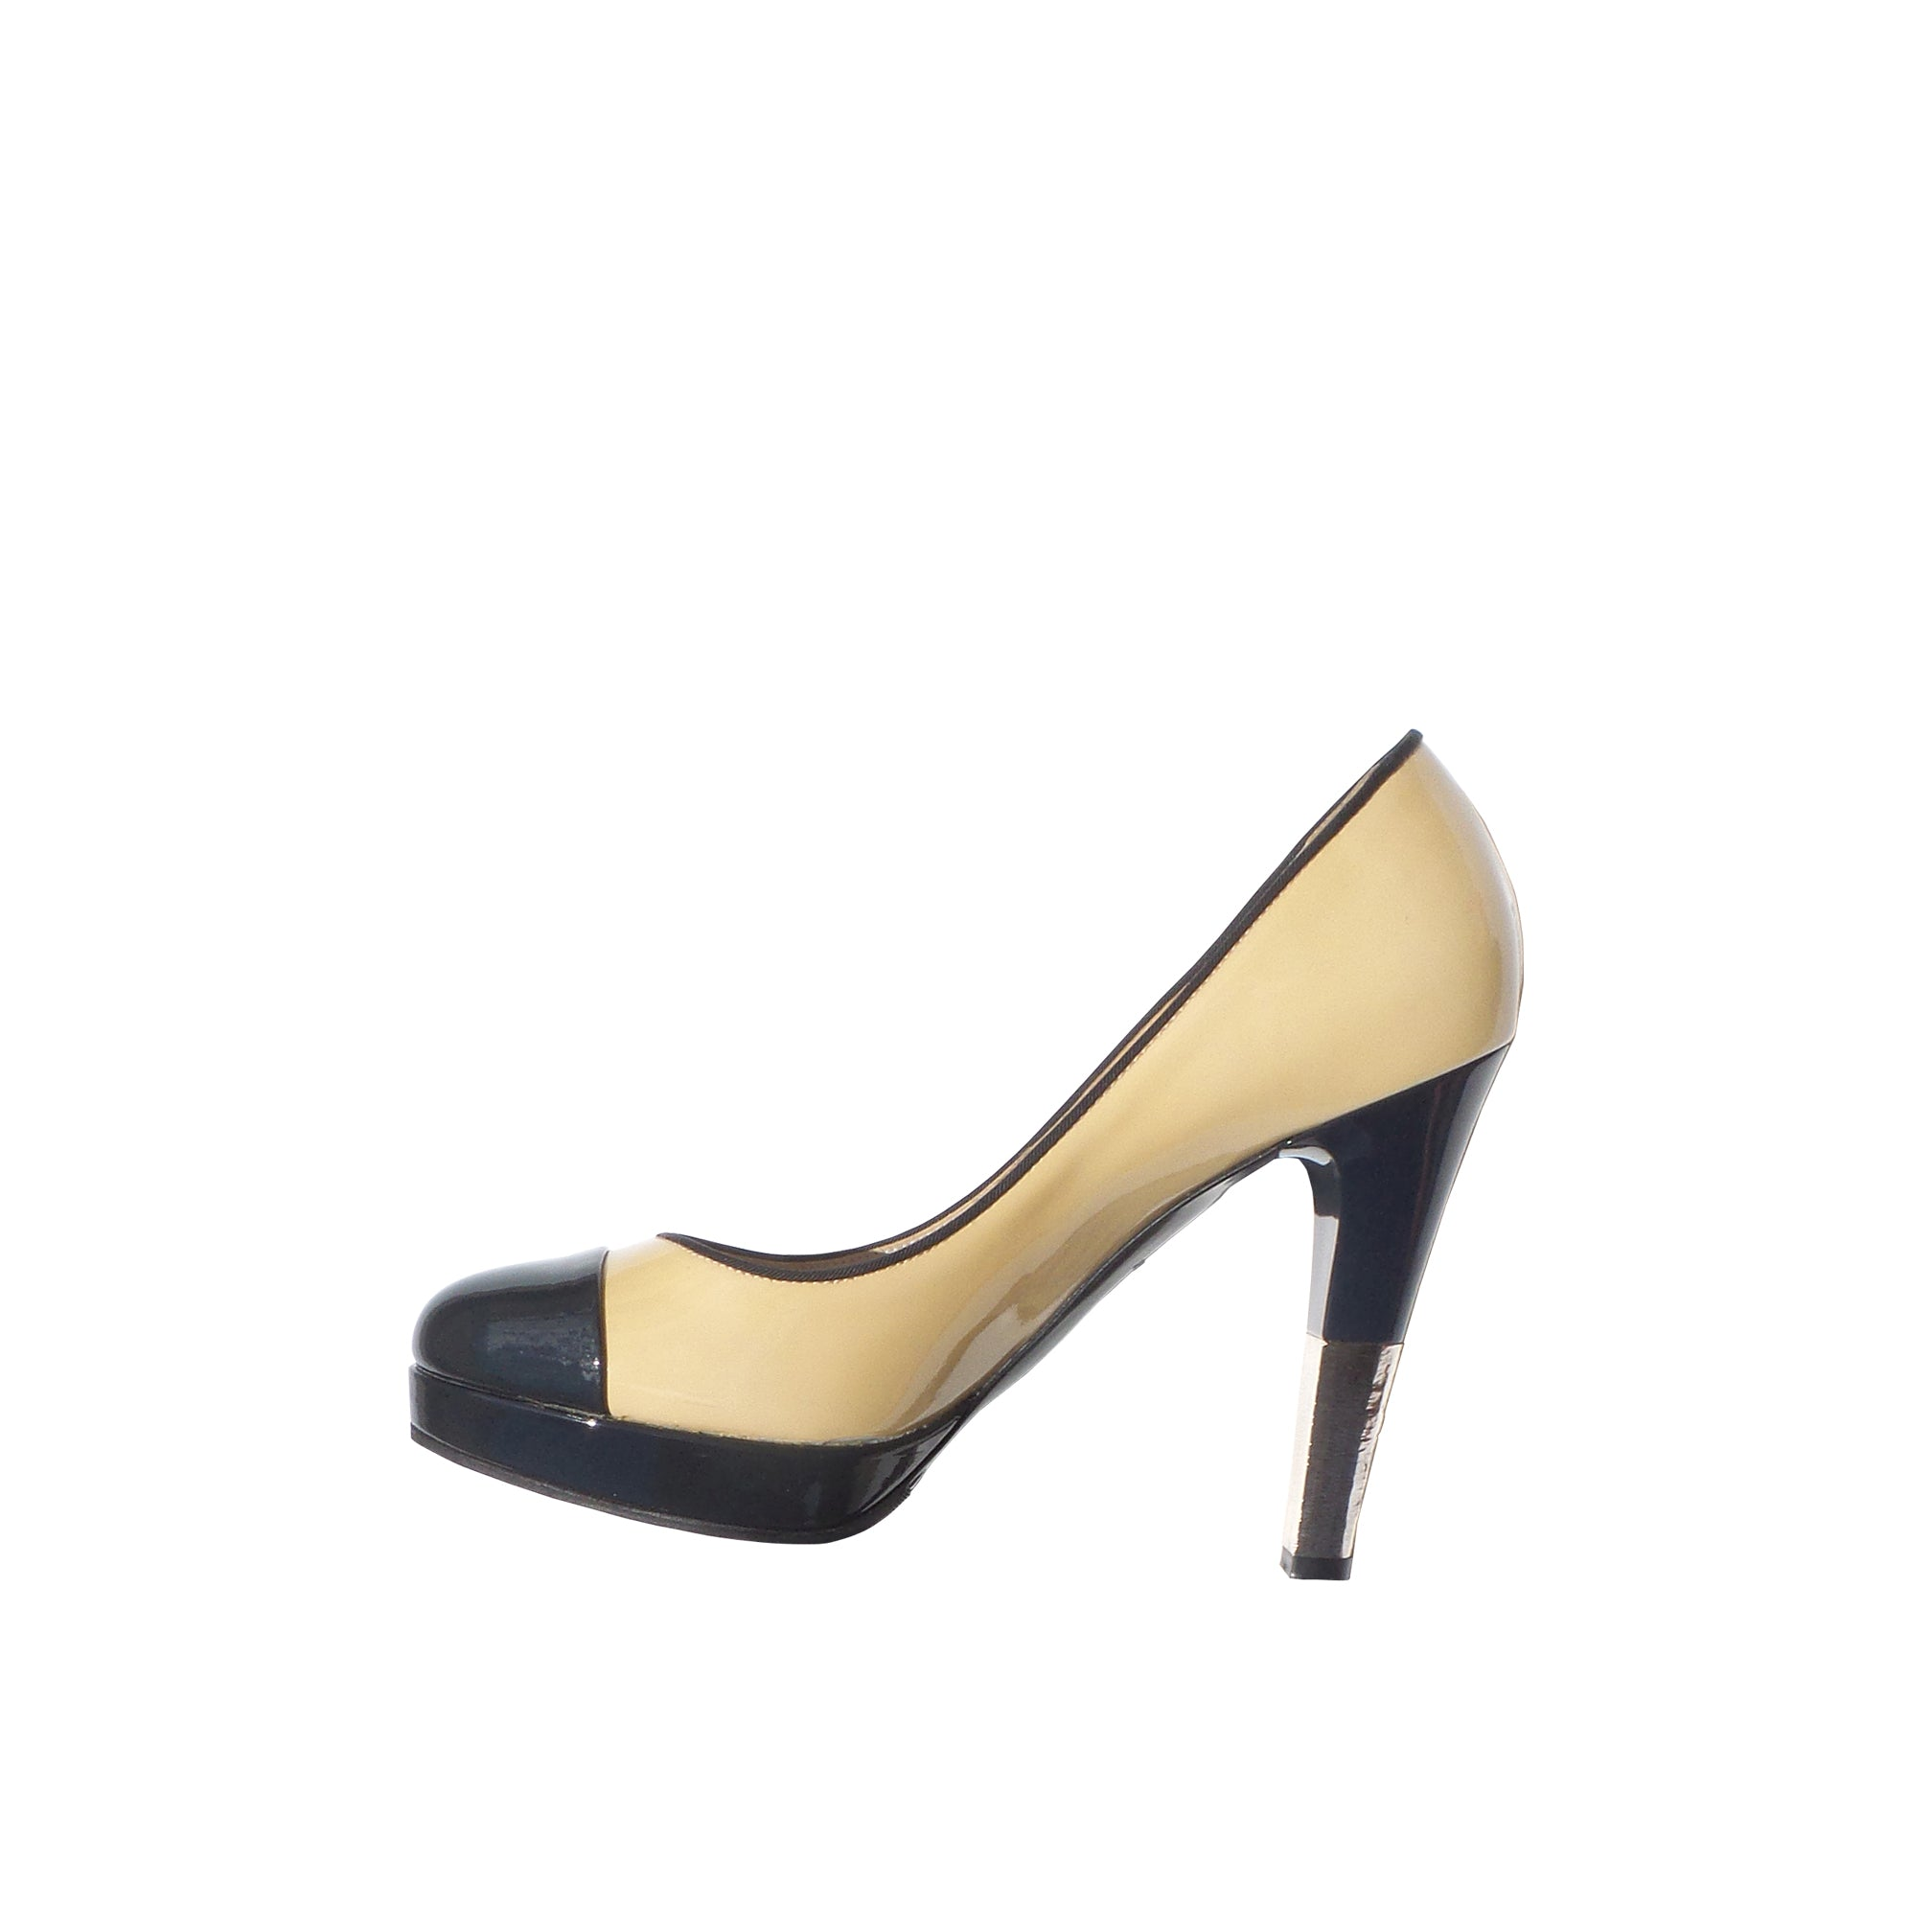 a77e5a70a CHANEL Beige Black Navy Patent Leather Cap Toe Platform Silver Heels P –  Encore Resale.com